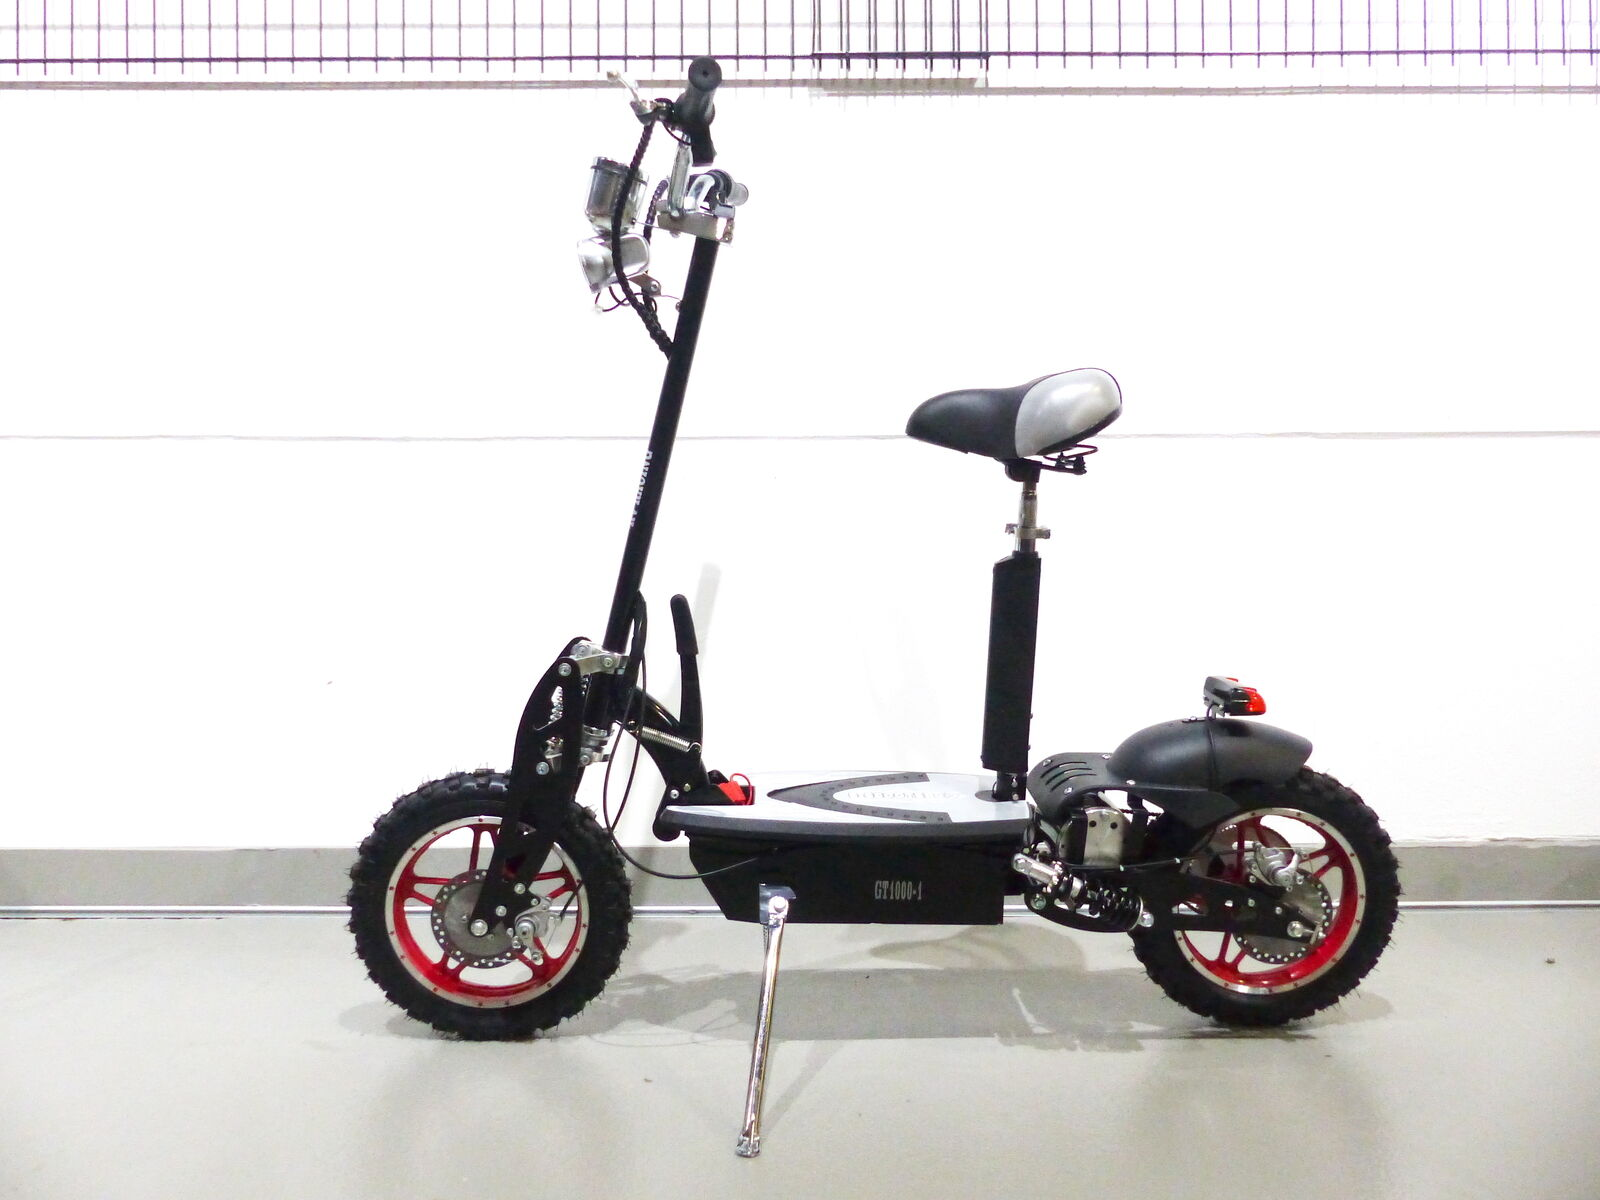 elektro scooter 1000 watt e scooter roller 36v 1000w elektroroller e scooter ebay. Black Bedroom Furniture Sets. Home Design Ideas